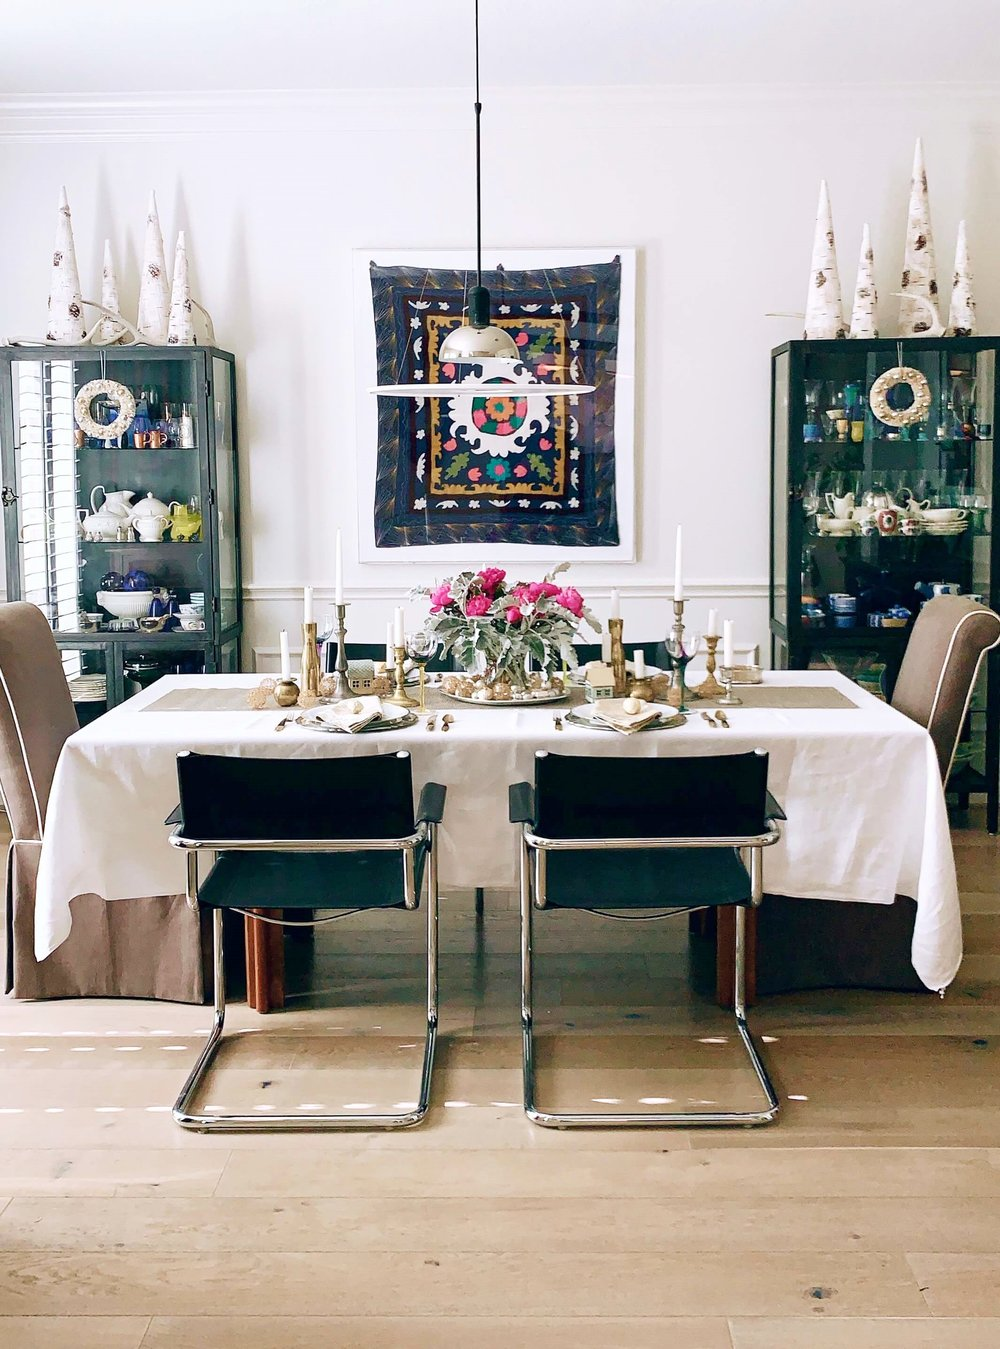 Christmas home tour - dining room | Carla Aston, Designer #holidayhometour #christmastabletop #christmasdecorating